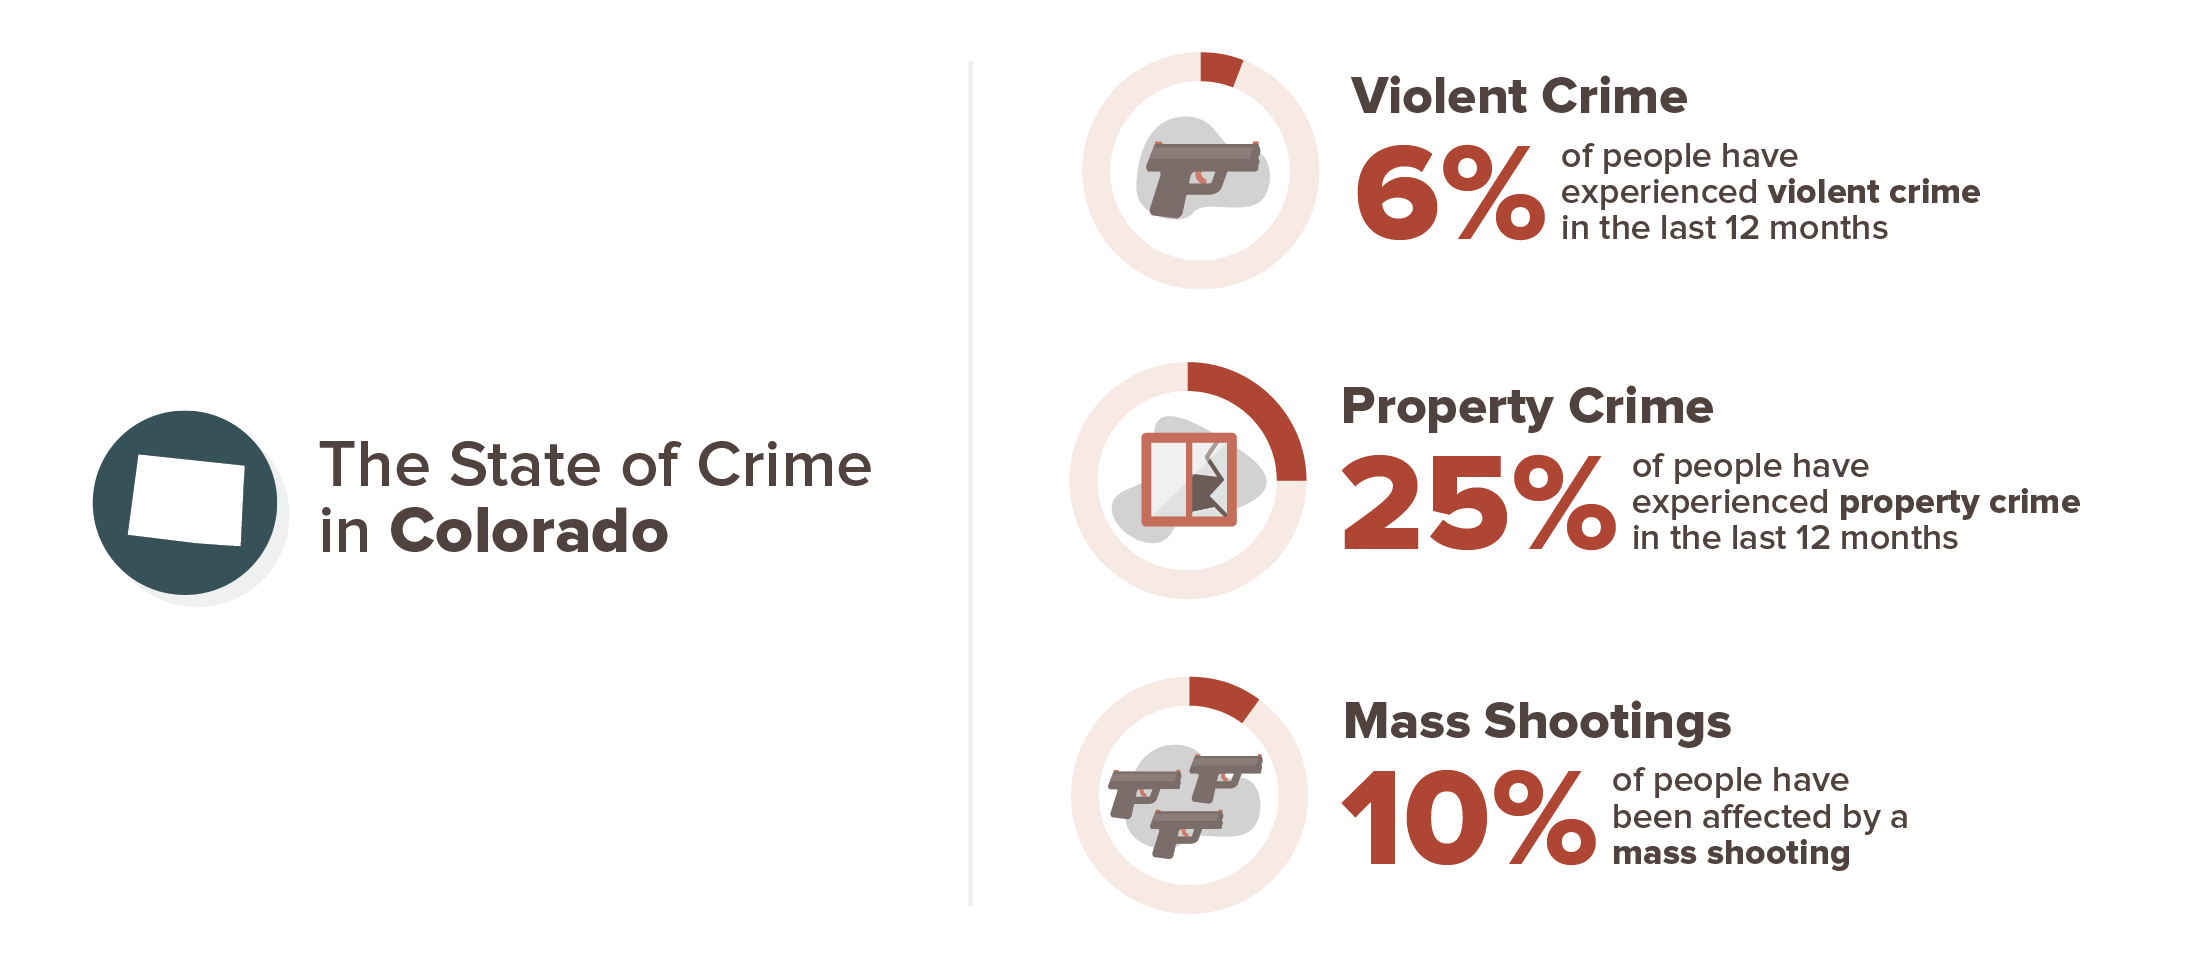 Colorado crime experience infographic; 6% violent crime, 25% property crime, 10% mass shooting